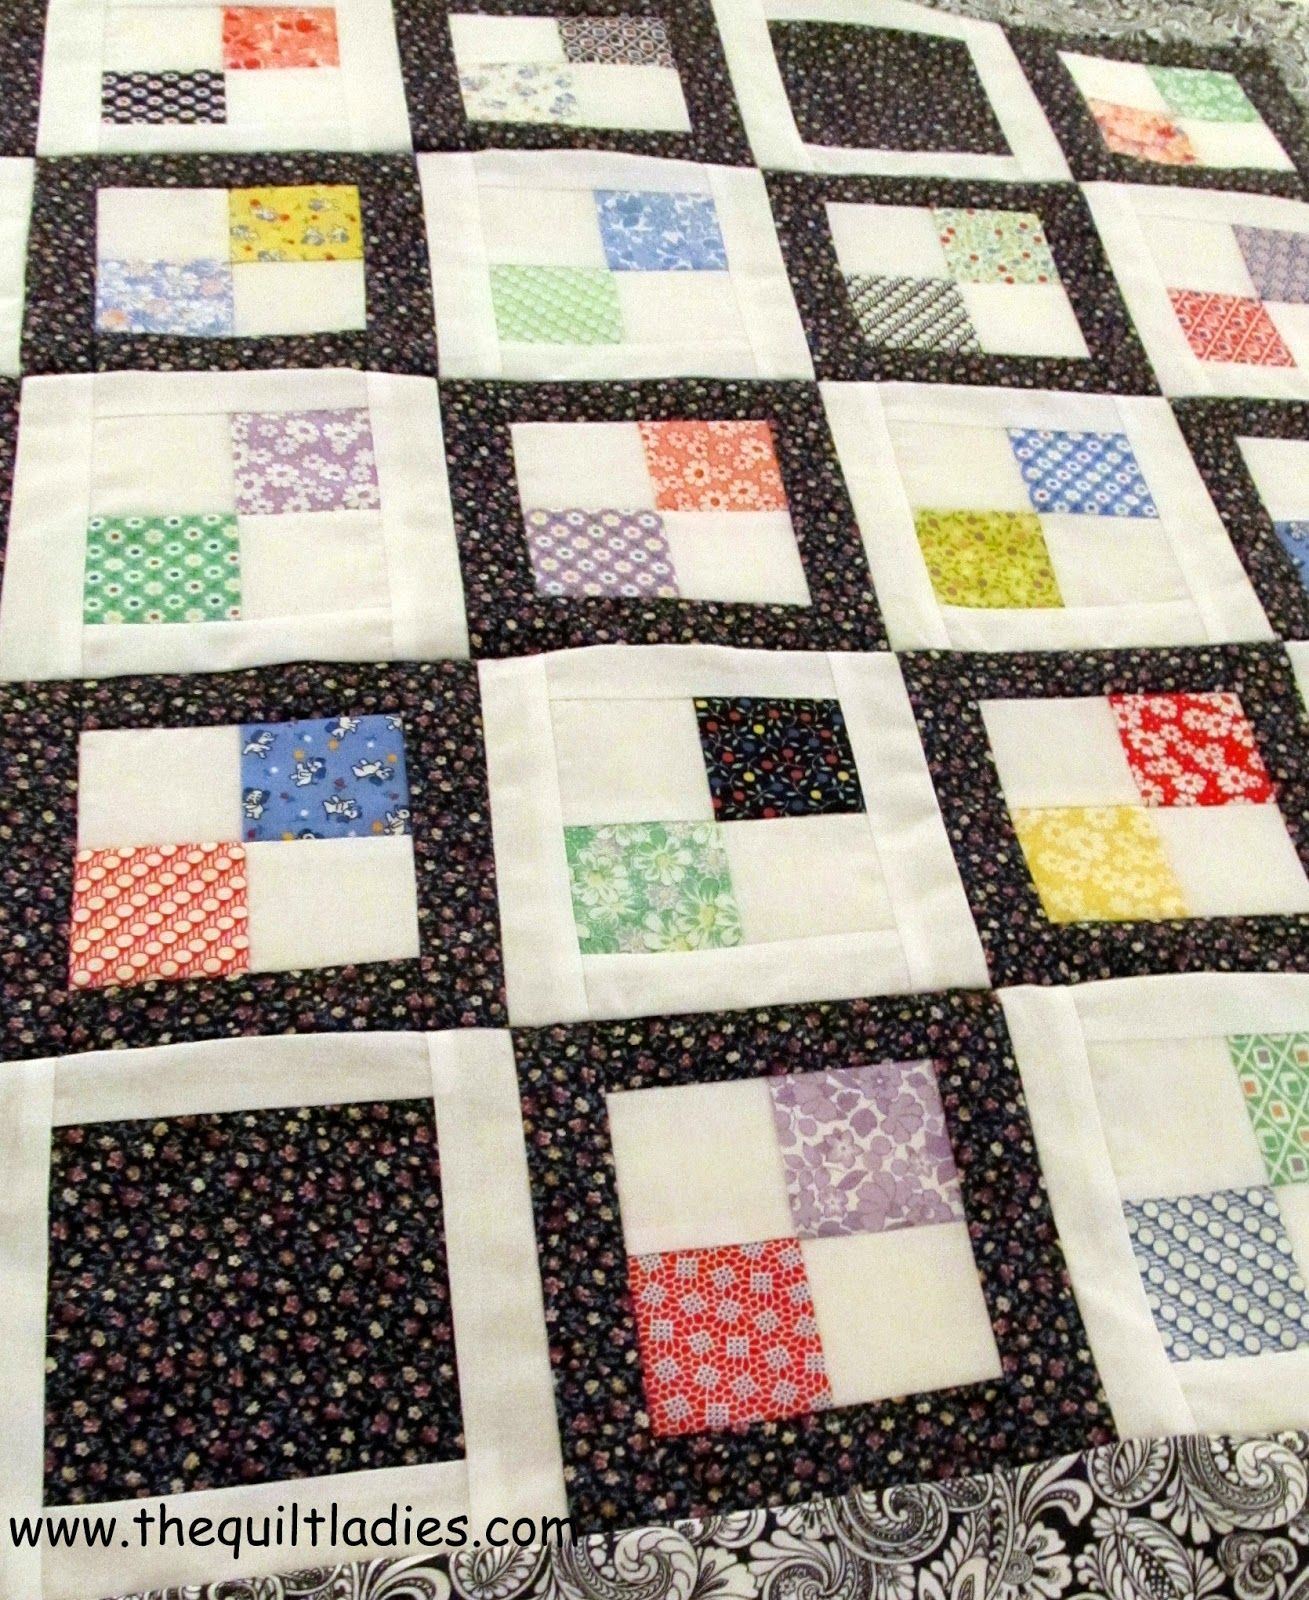 free pattern to make a Four Patch quilt top | Quilting | Pinterest ... : 4 patch quilt patterns free - Adamdwight.com